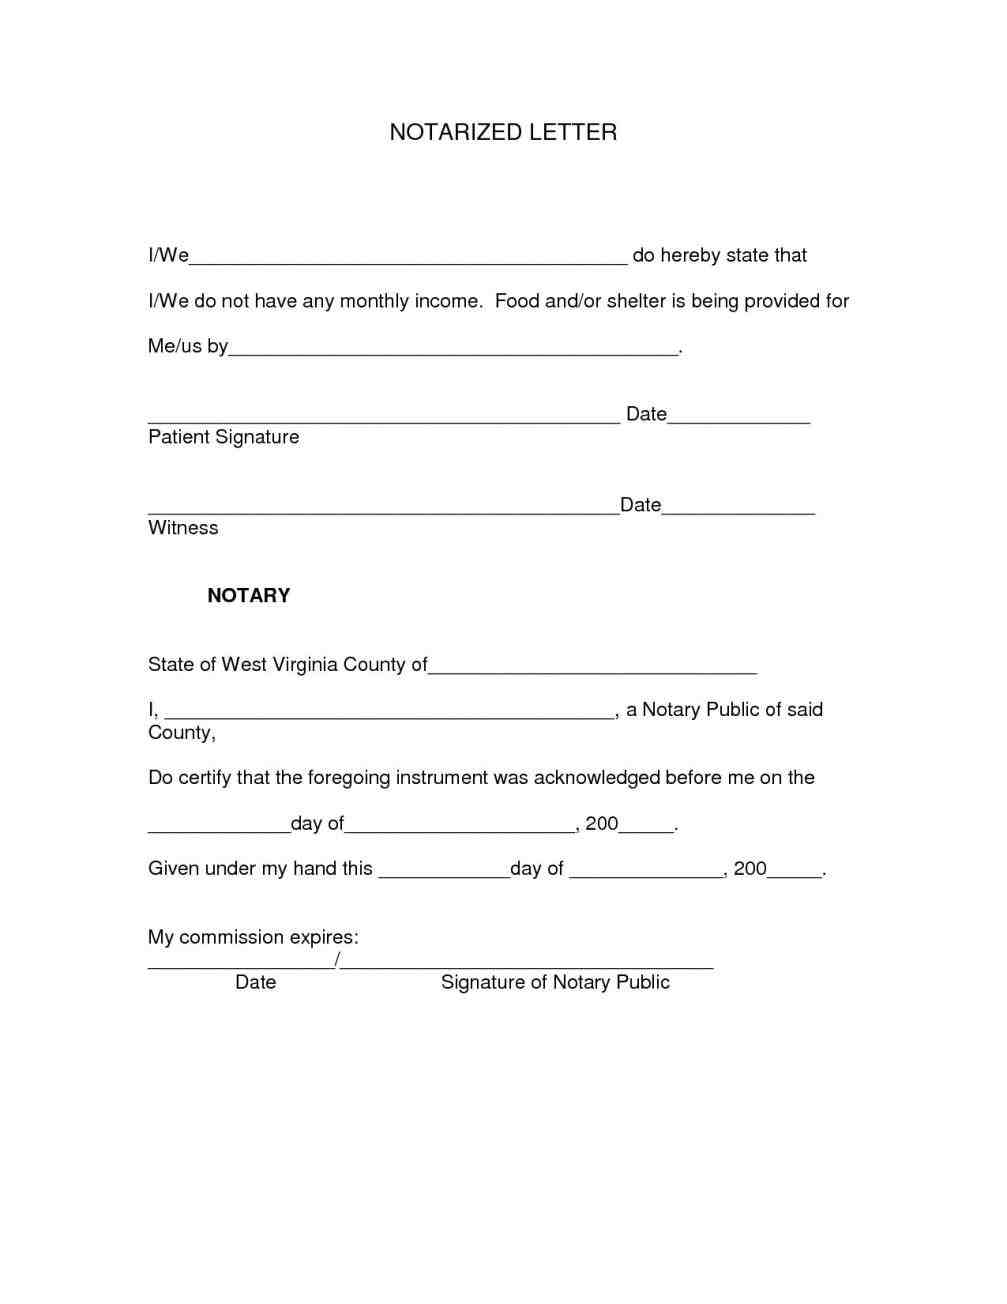 Texas Notary Forms Templates